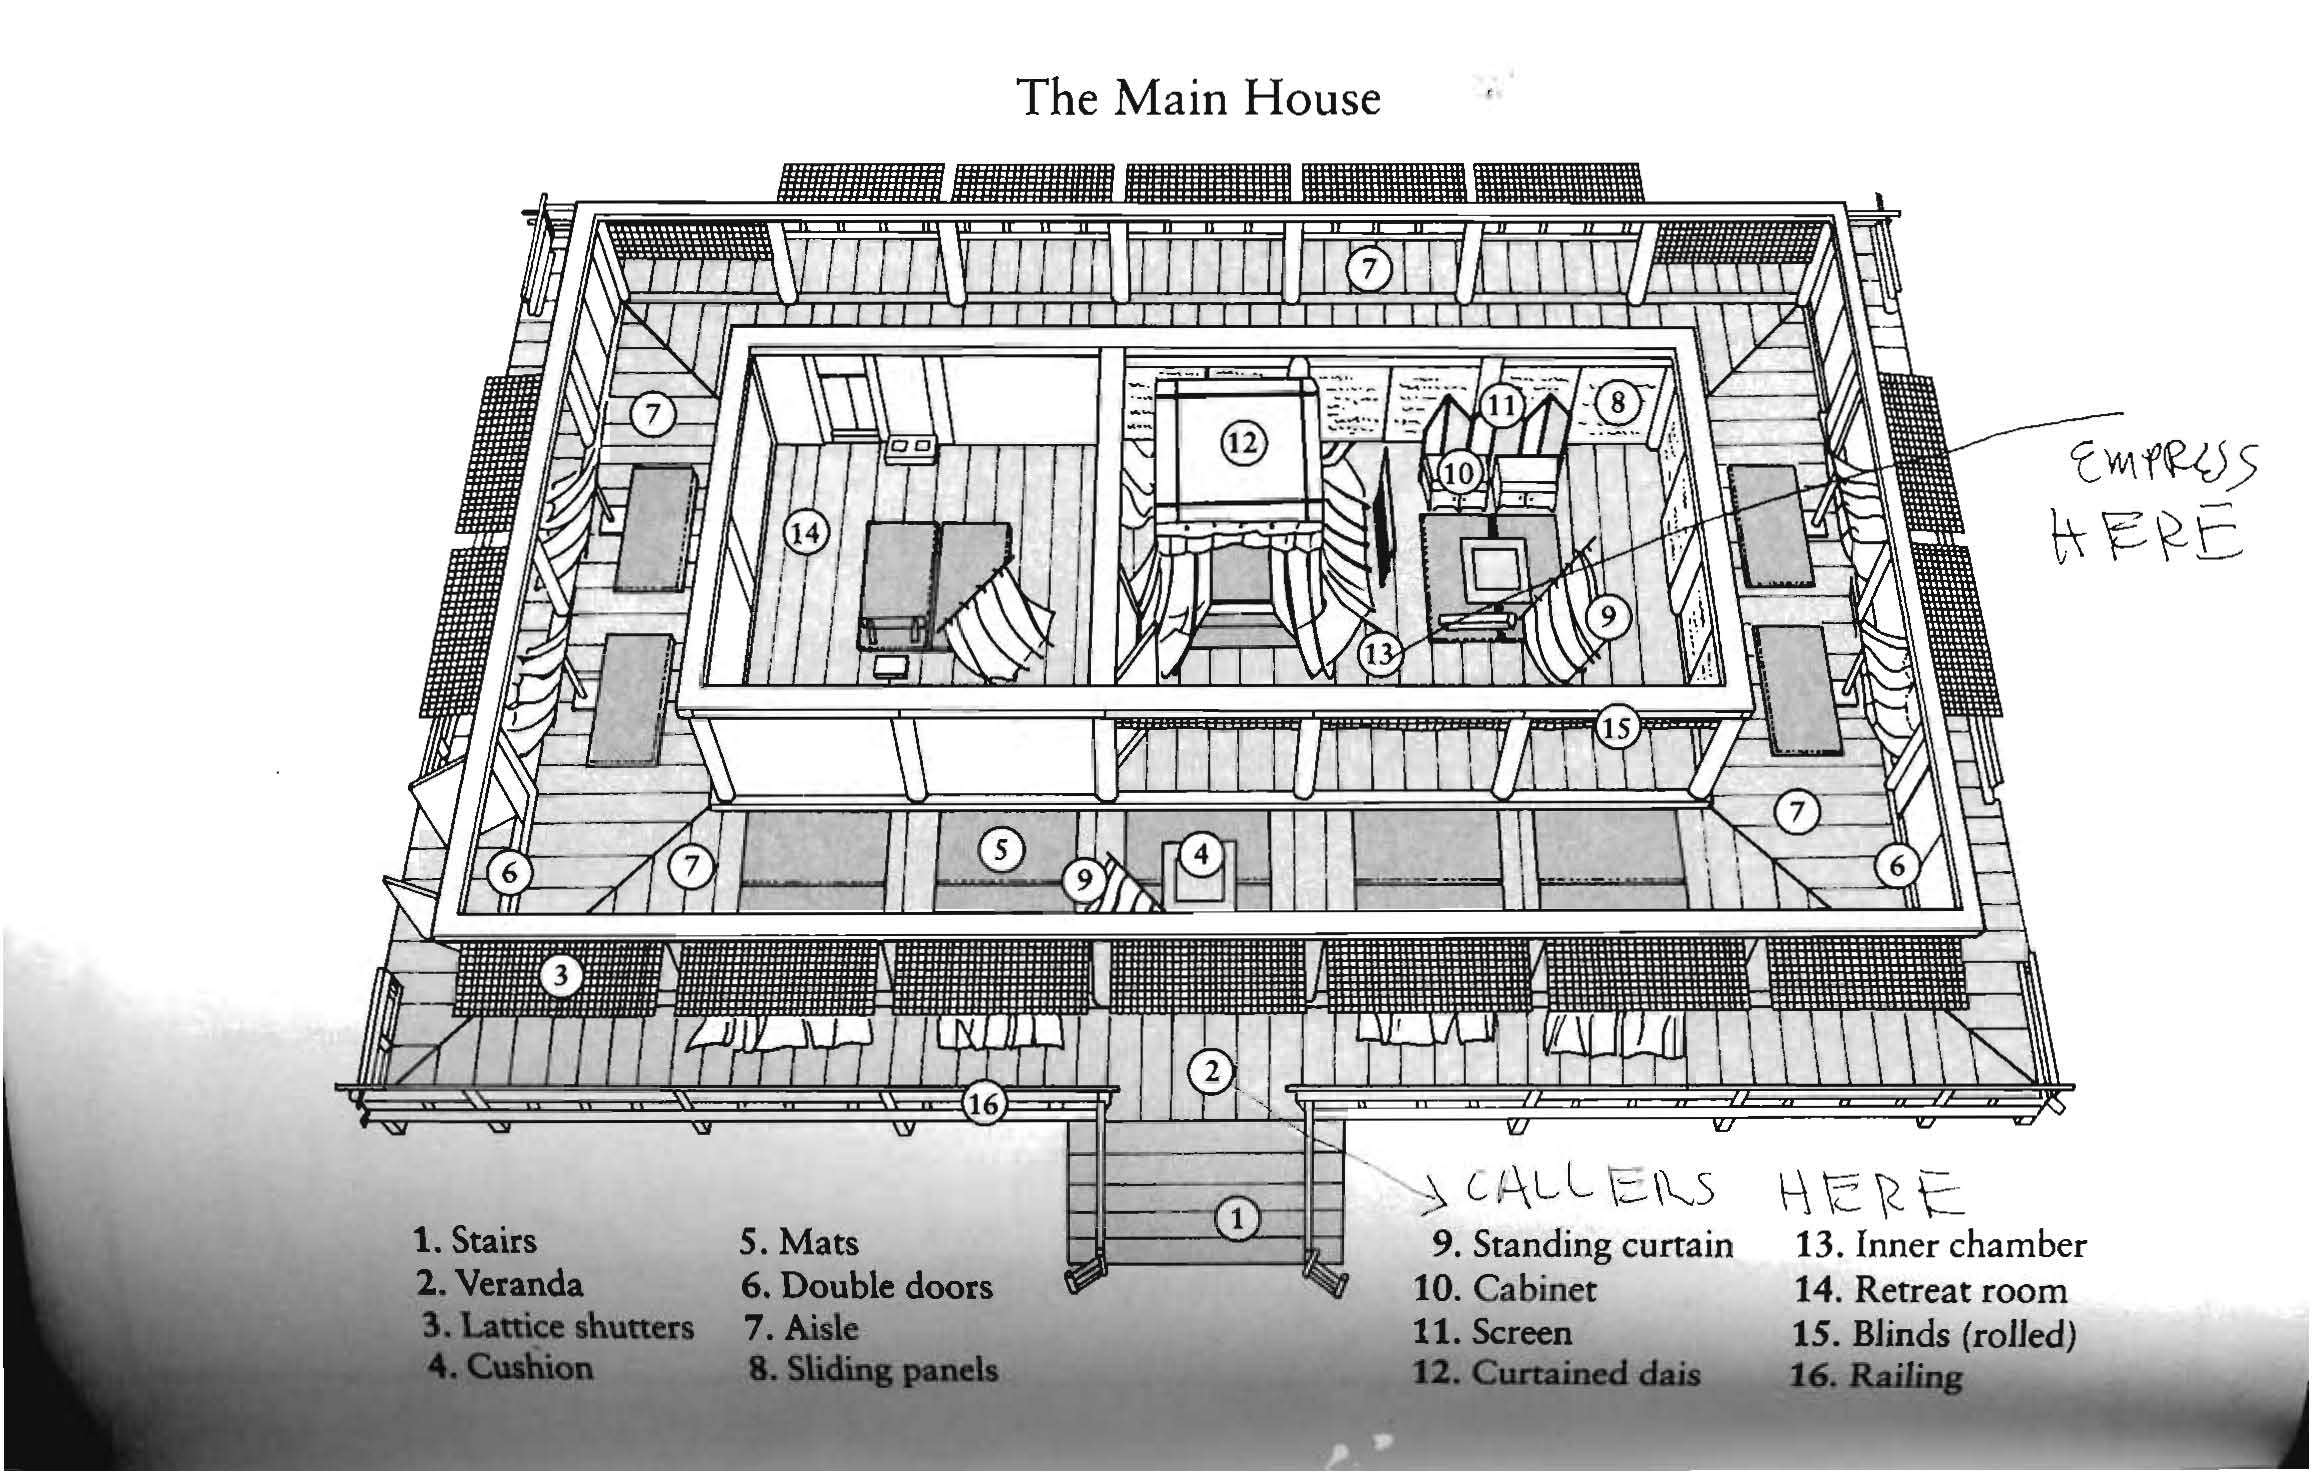 Floorplan Of Traditional Japanese Structure Perfect For Small